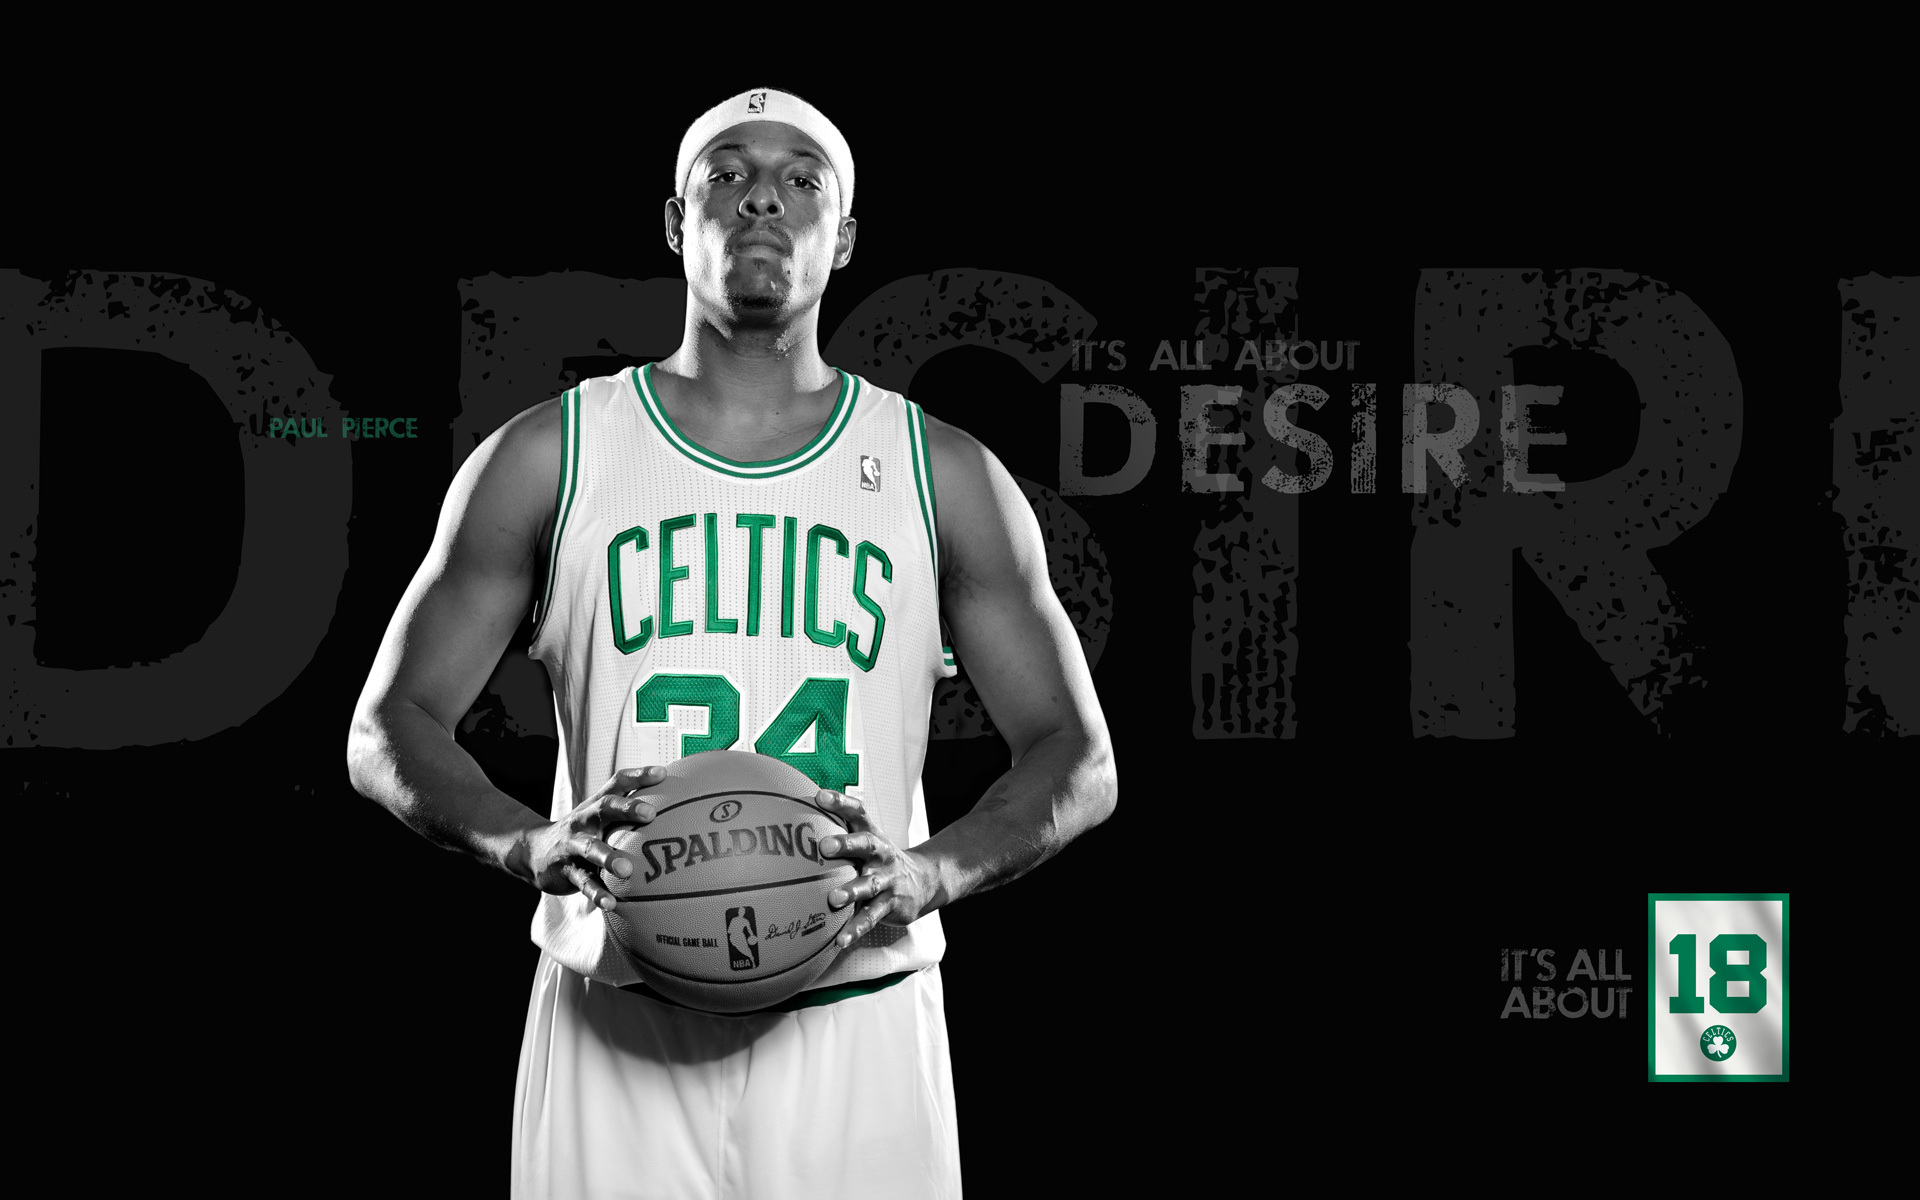 Boston Celtics Images Paul Pierce Hd Wallpaper And Background Photos